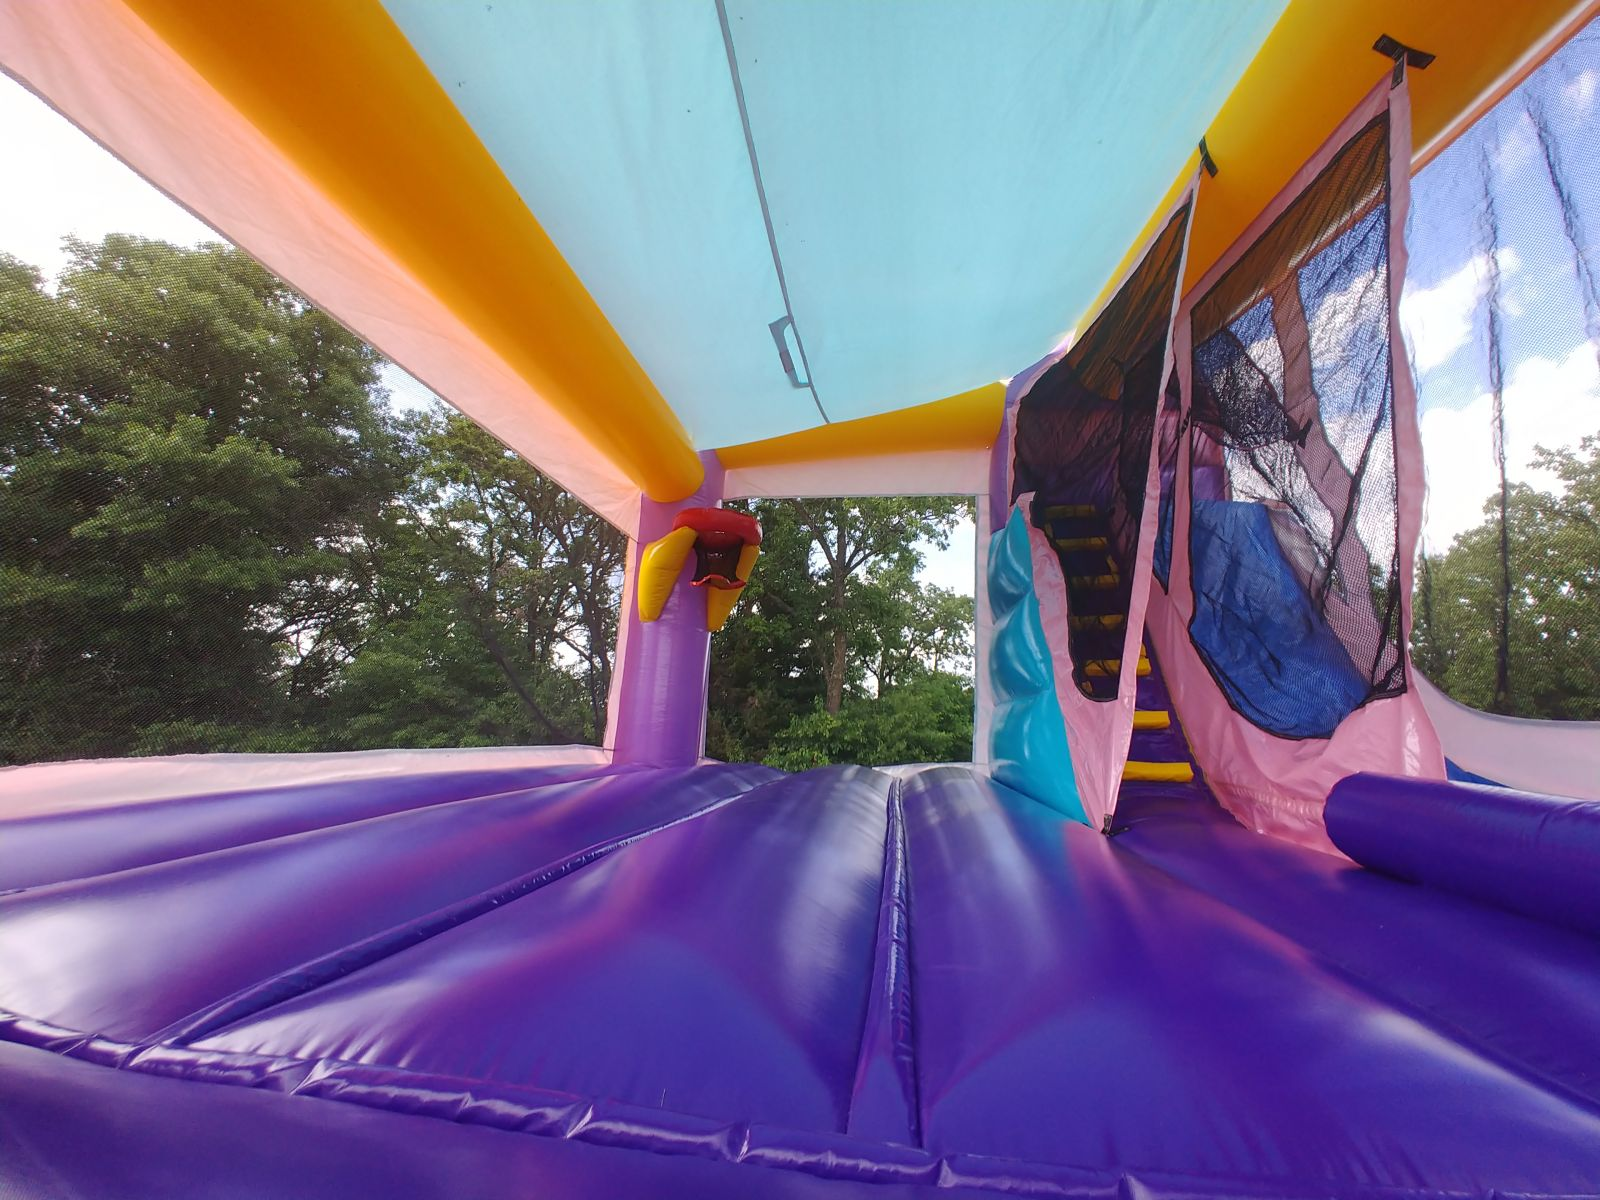 Entrance view of inflatable combo jumping area with basketball hoop and slide